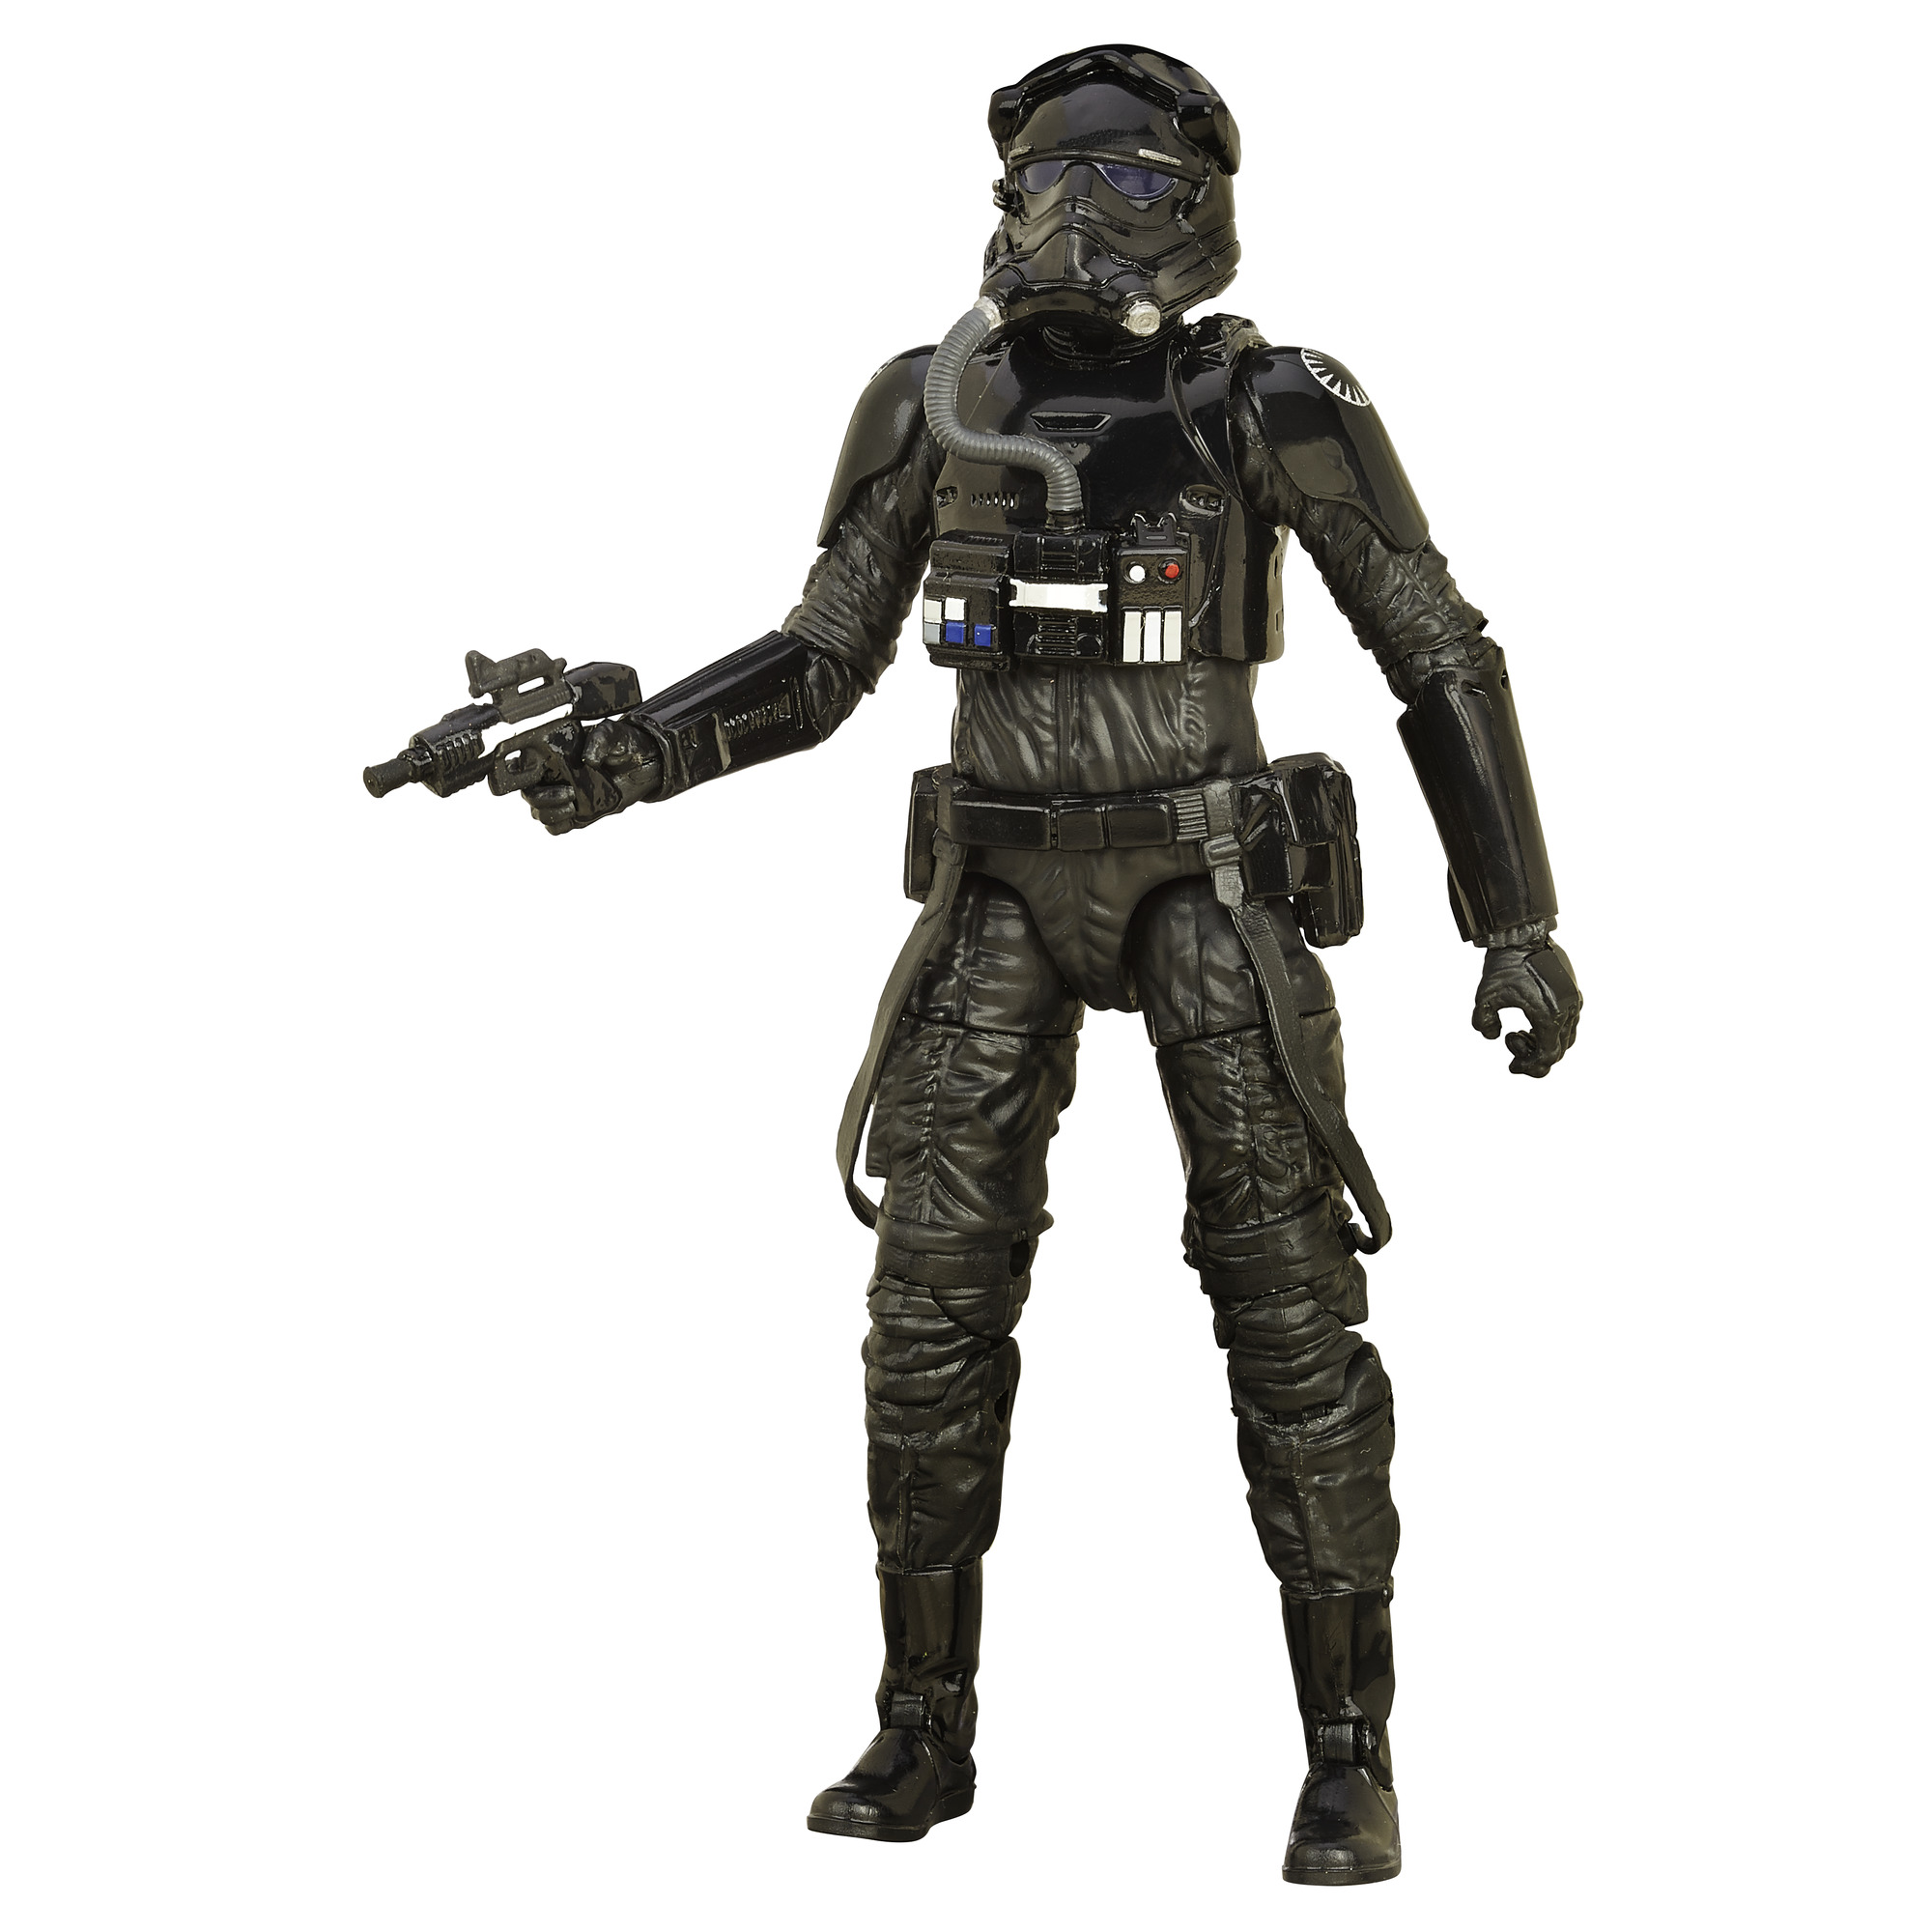 Disney Star Wars: The Force Awakens Black Series 6 Inch First Order TIE Fighter Pilot PartNumber: 004W007494876014P KsnValue: 7494876 MfgPartNumber: B4596AS00